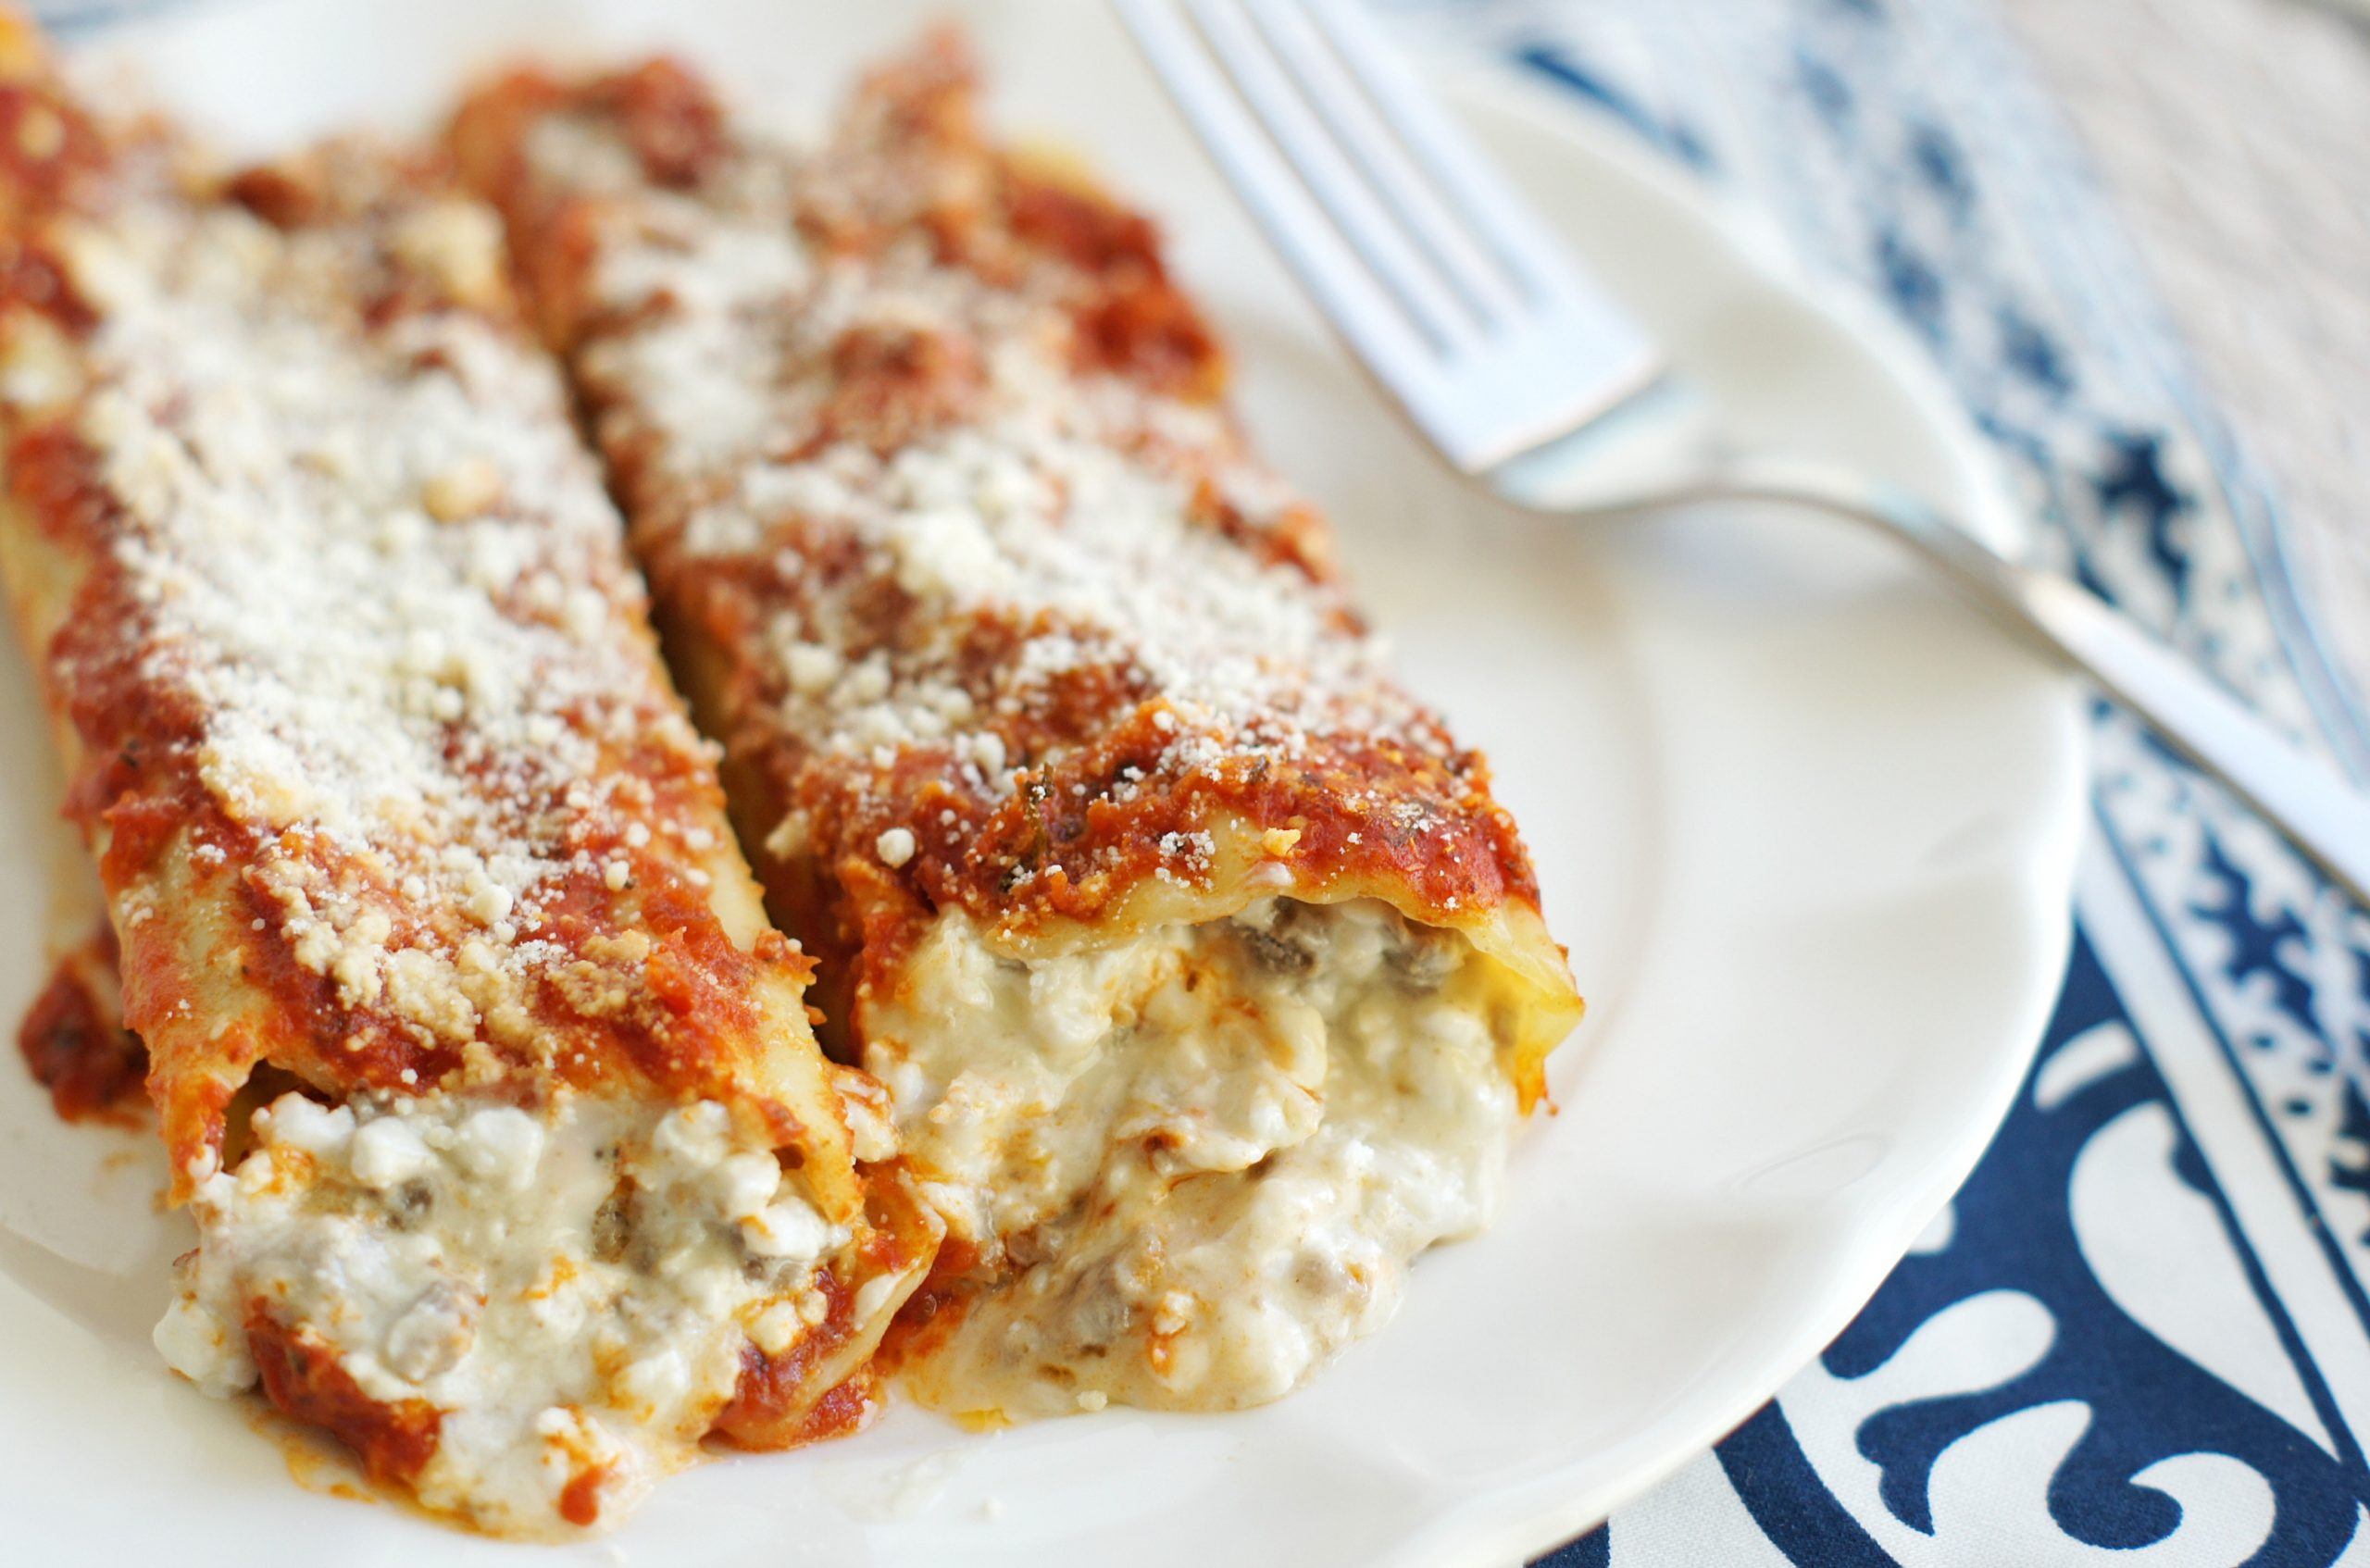 White plate with two pieces of manicotti on it.